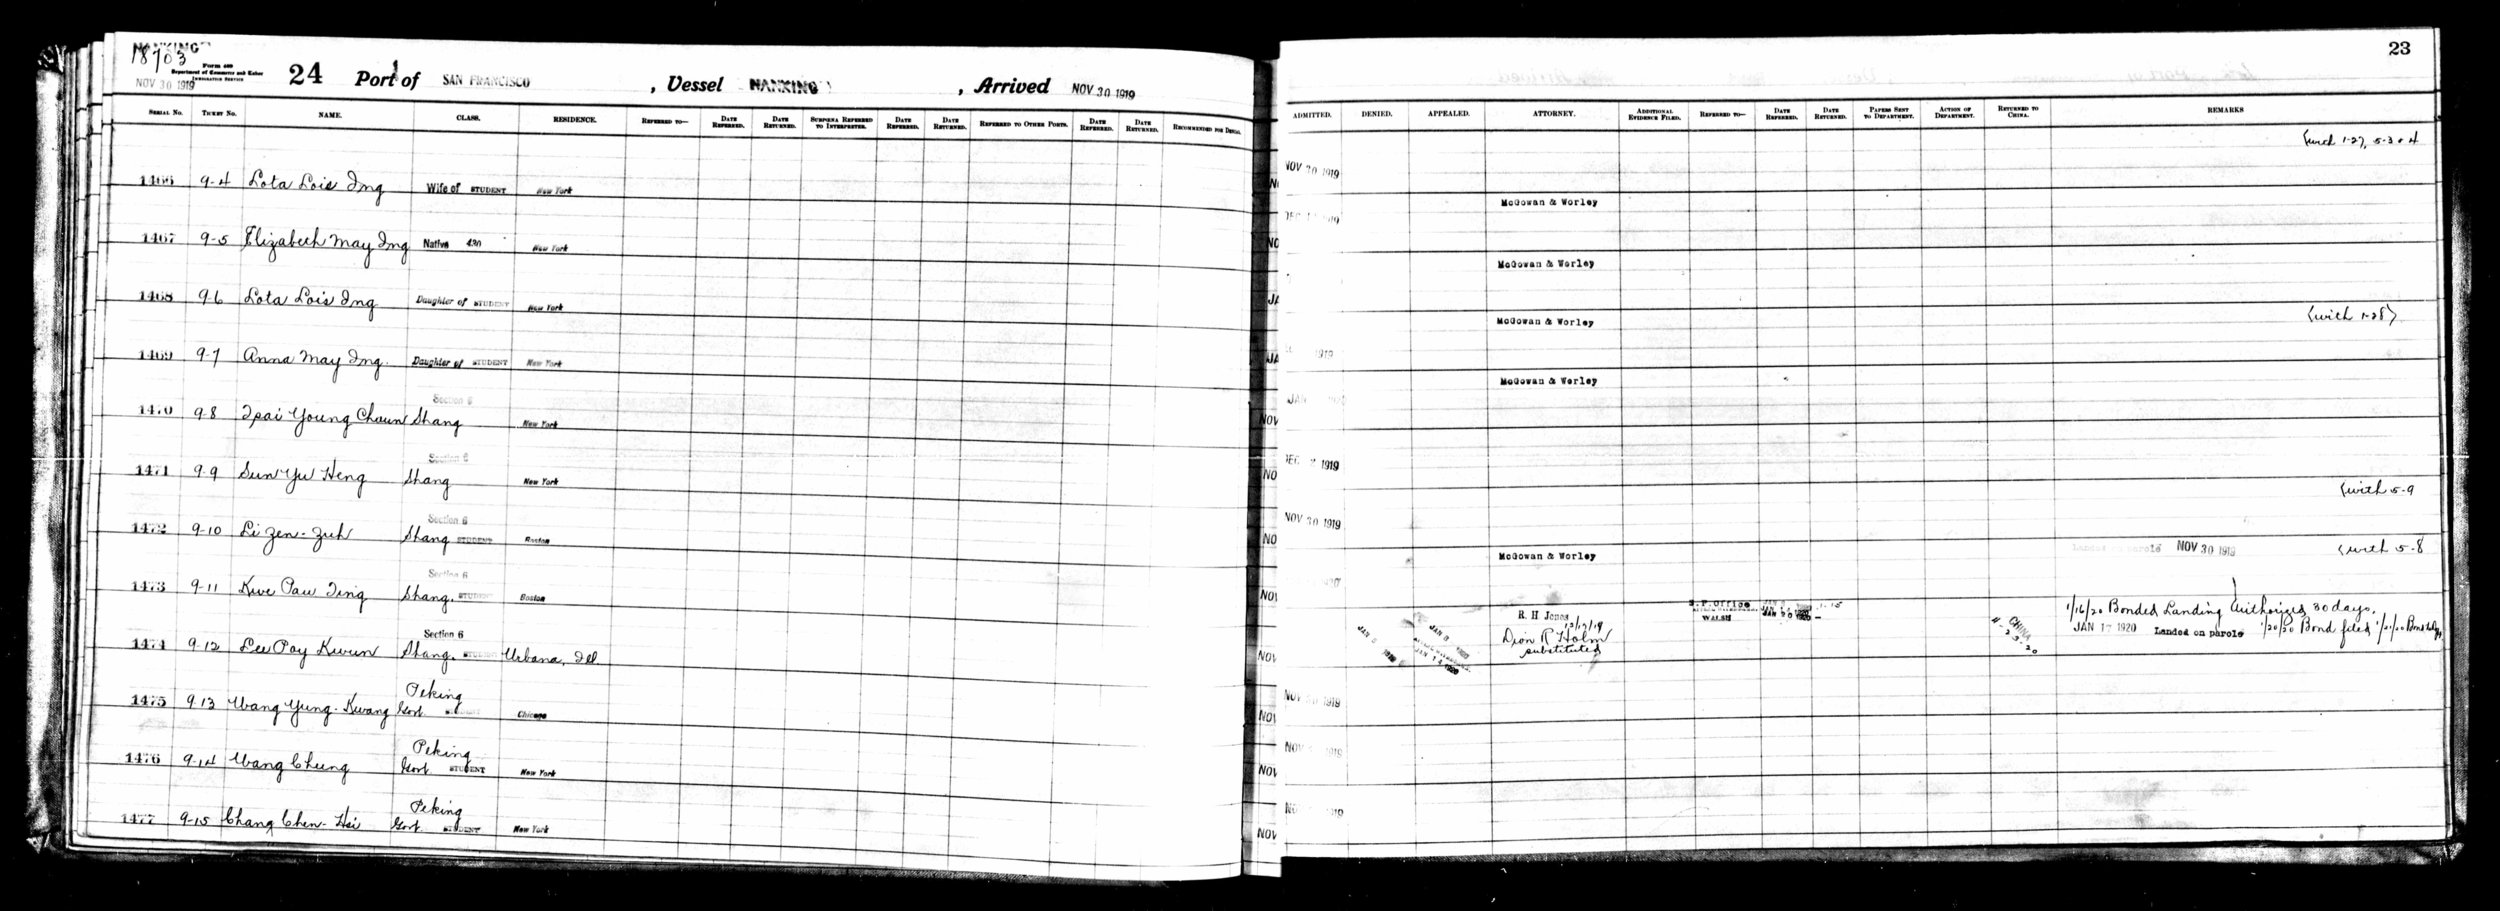 Lists of Chinese Applying for Admission to the United States through the Port of San Francisco, California, compiled 07/07/1903-01/07/1947; (National Archives Microfilm Publication M1476, 27 rolls. ARC Identifier 4482916); Records of the Immigration and Naturalization Service, Record Group 85; National Archives, Washington, D.C.